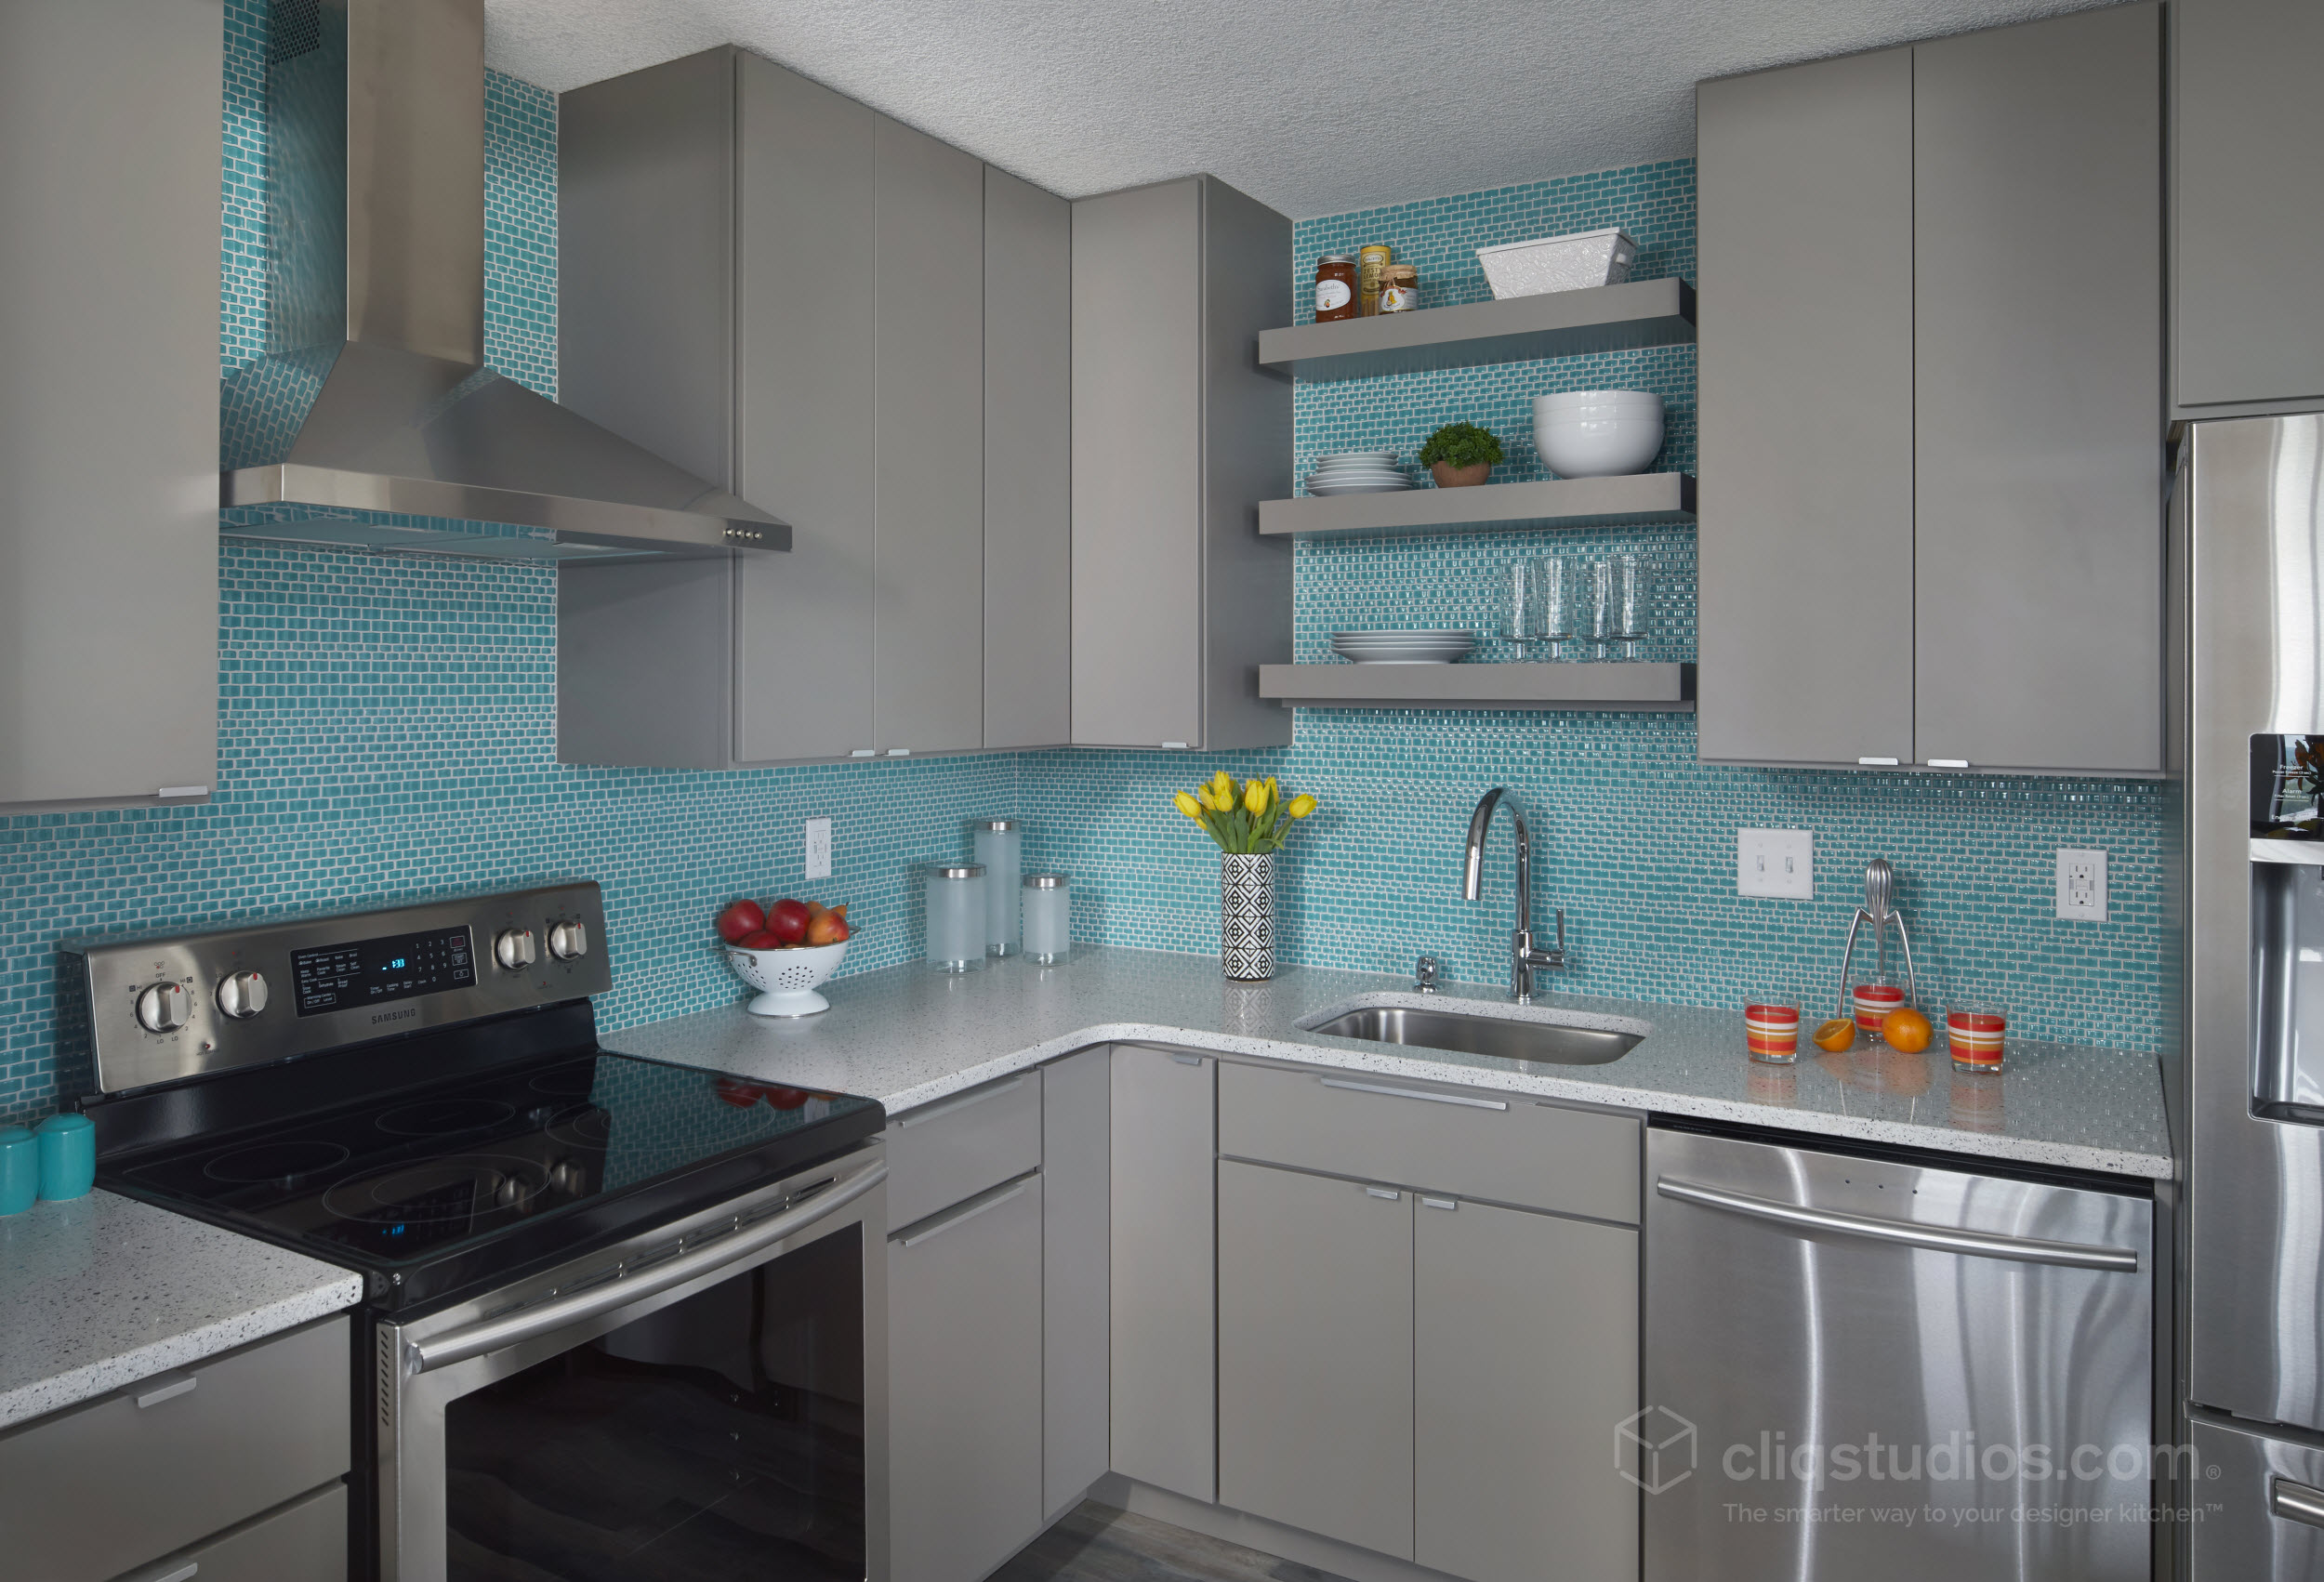 style-31-gray-floating-shelves-kitchen-15011-a4-WMNAIHBR